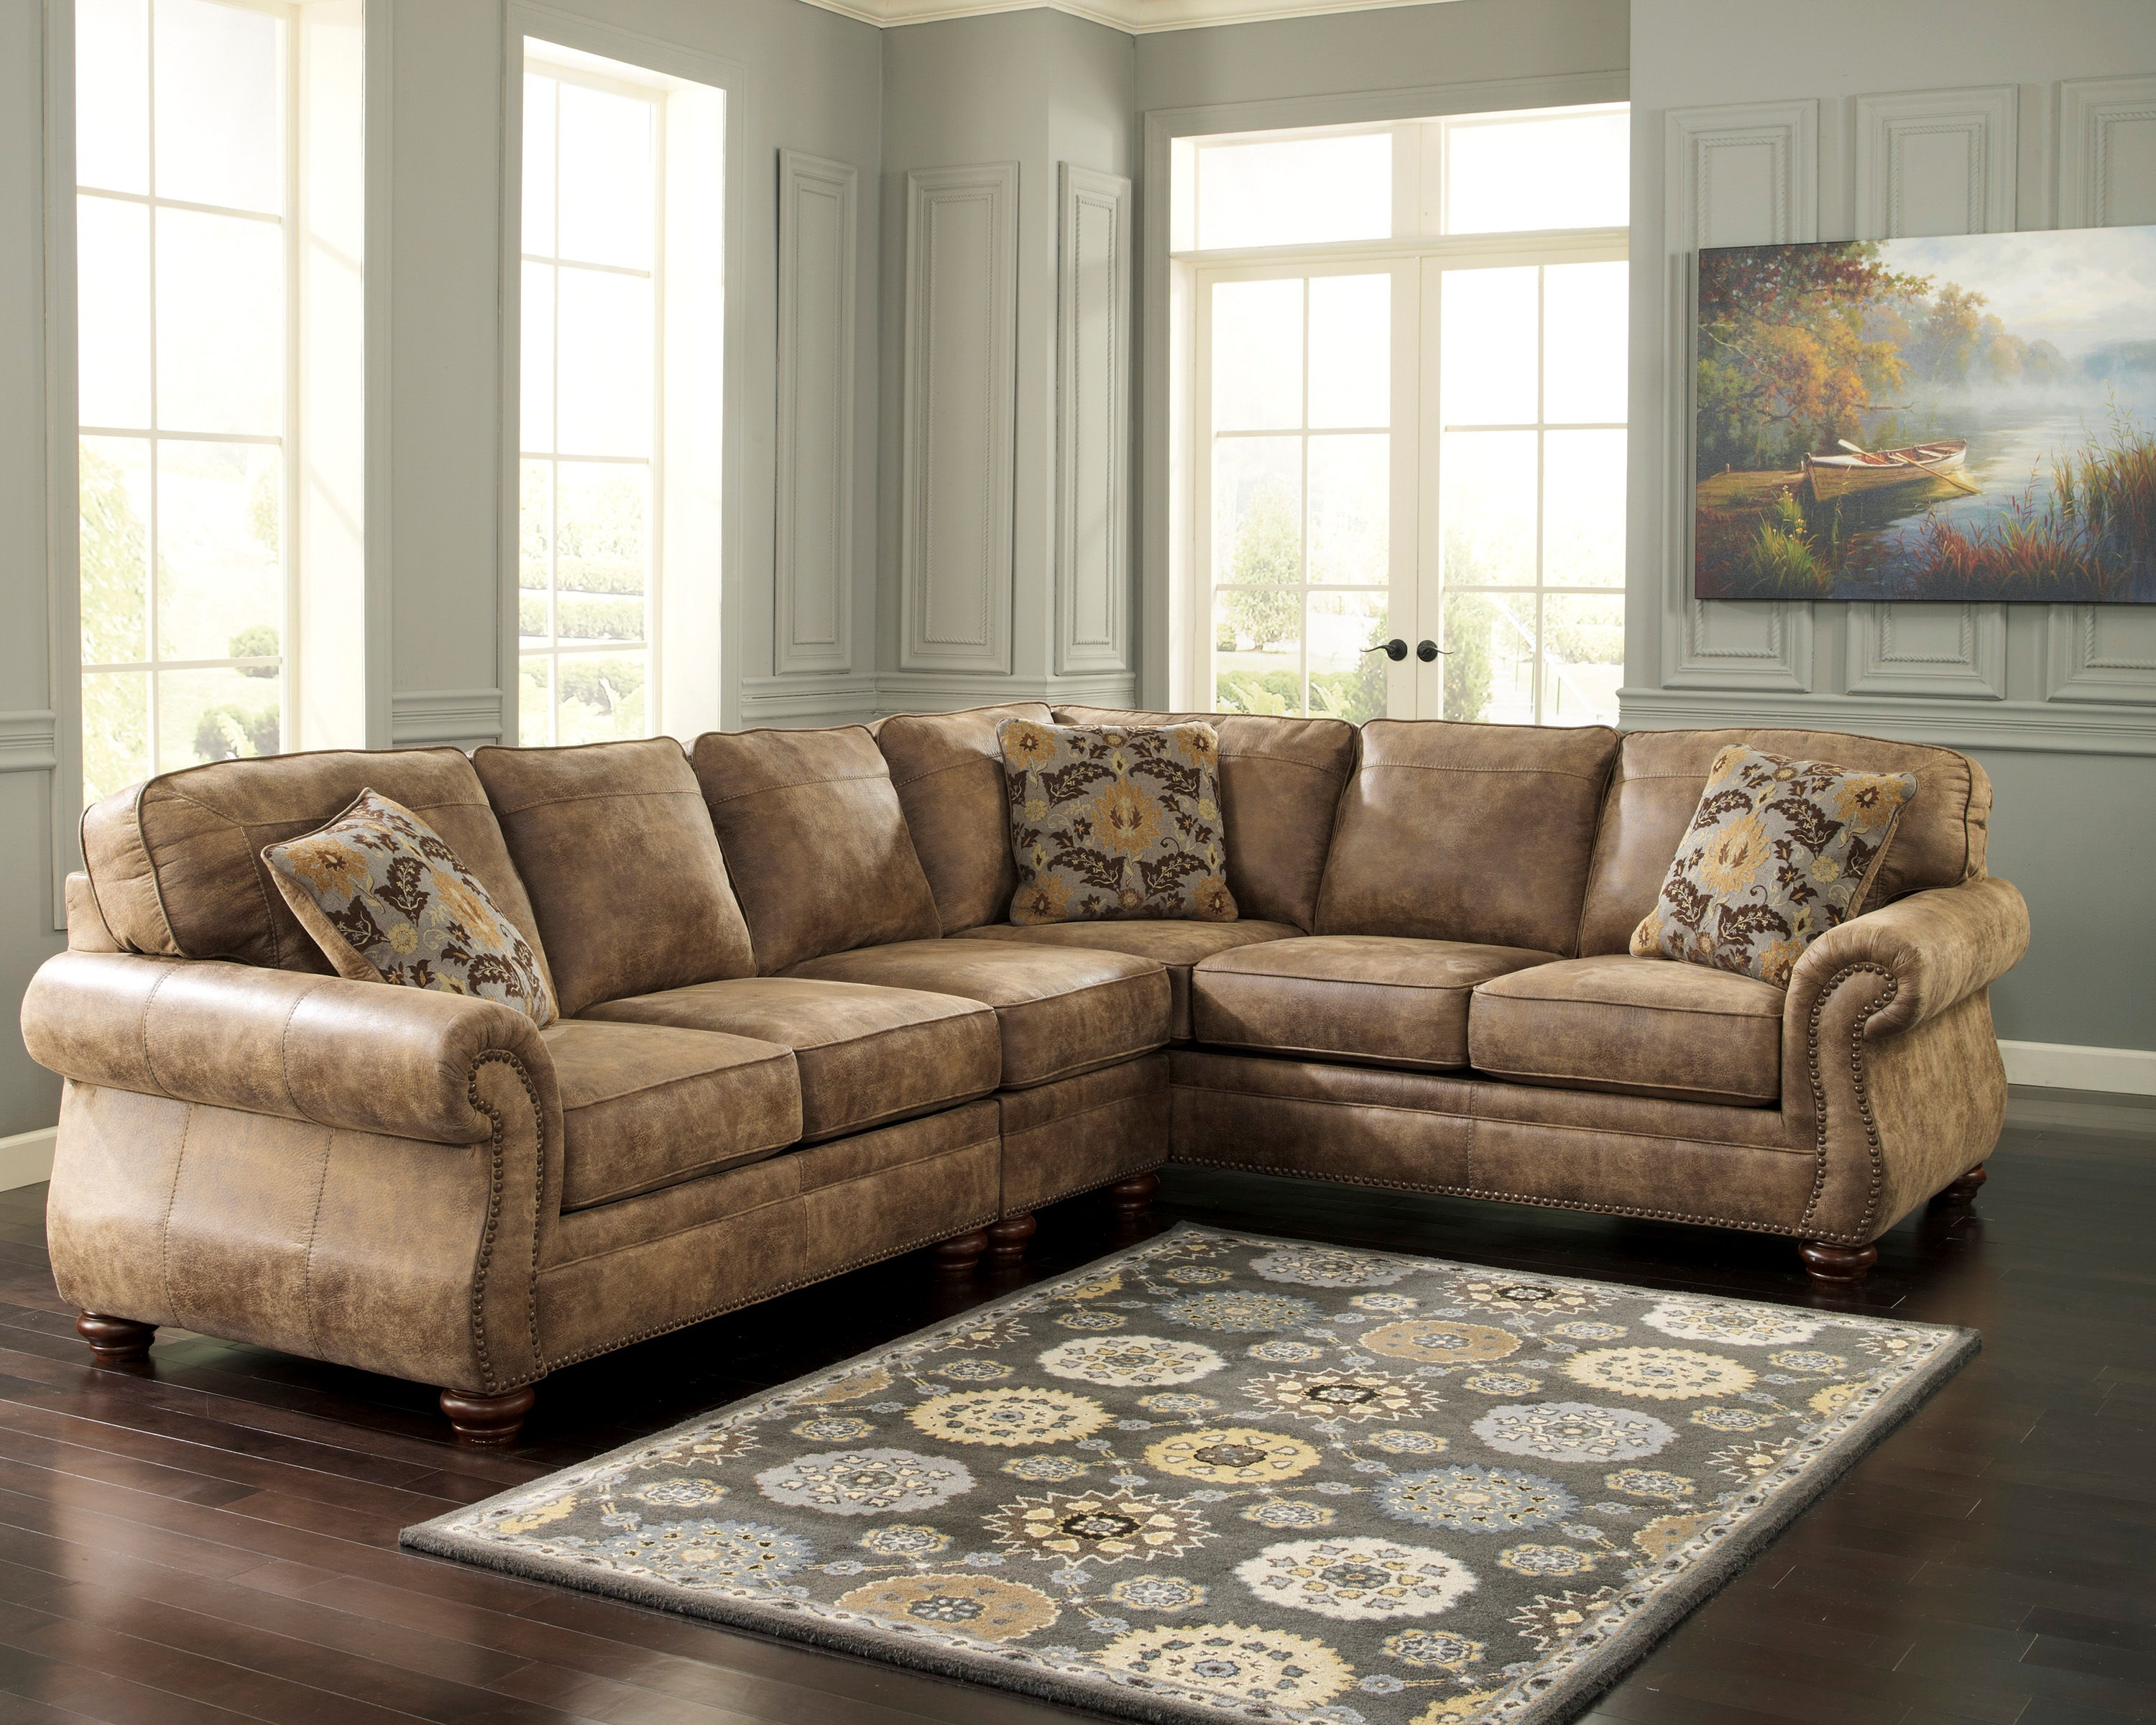 Baci Living Room (Gallery 14 of 20)